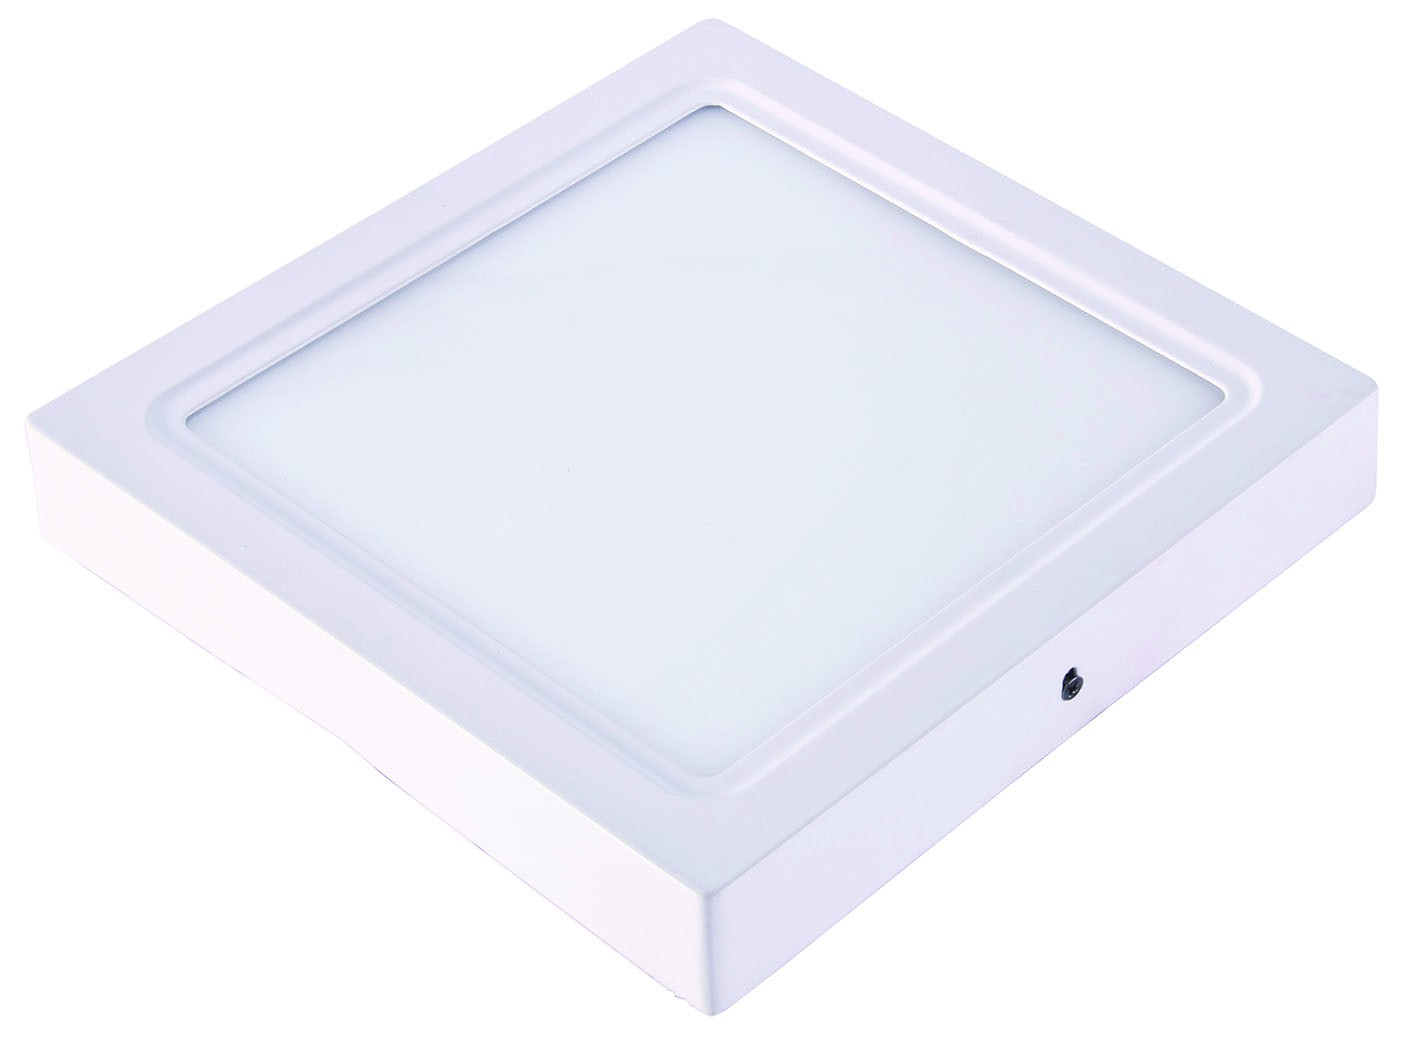 DOWNLIGHT LED 6W SUPERFICIAL CUADRADO 120x120mm BLANCO CÁLIDO